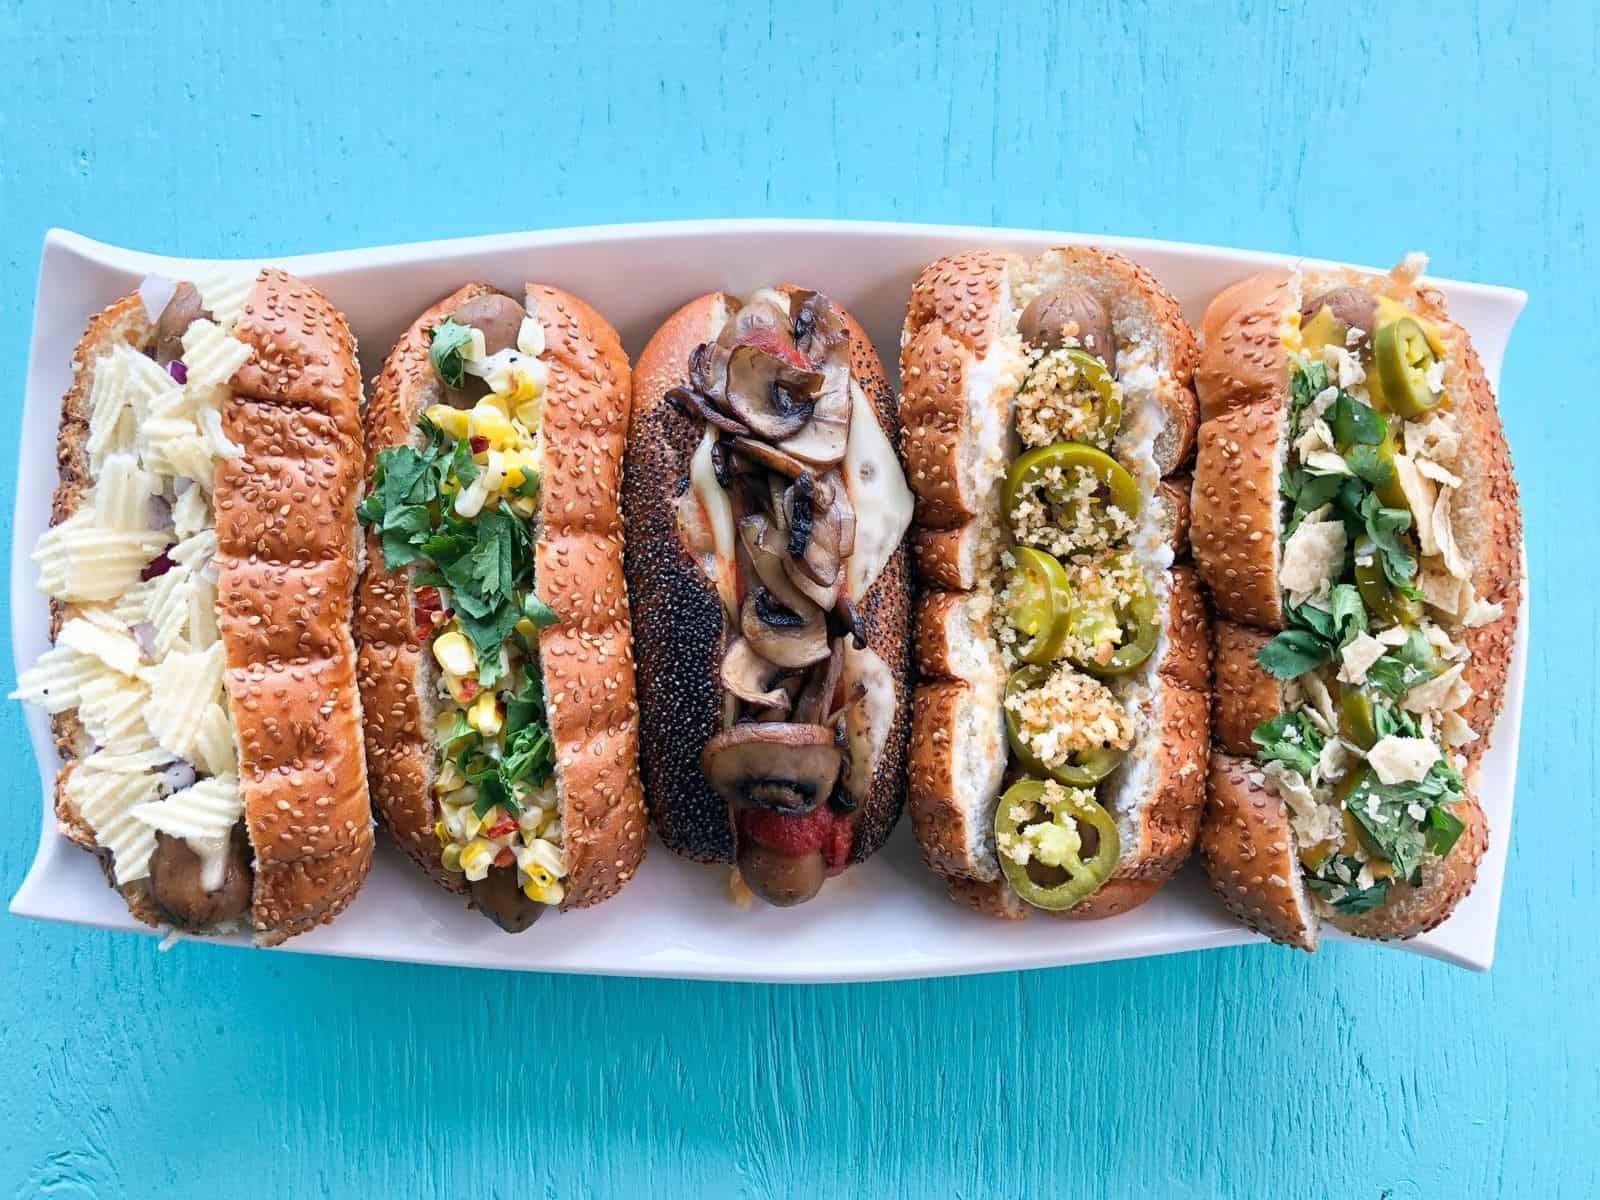 Vegan Hot Dog Toppings | Hot Dogs